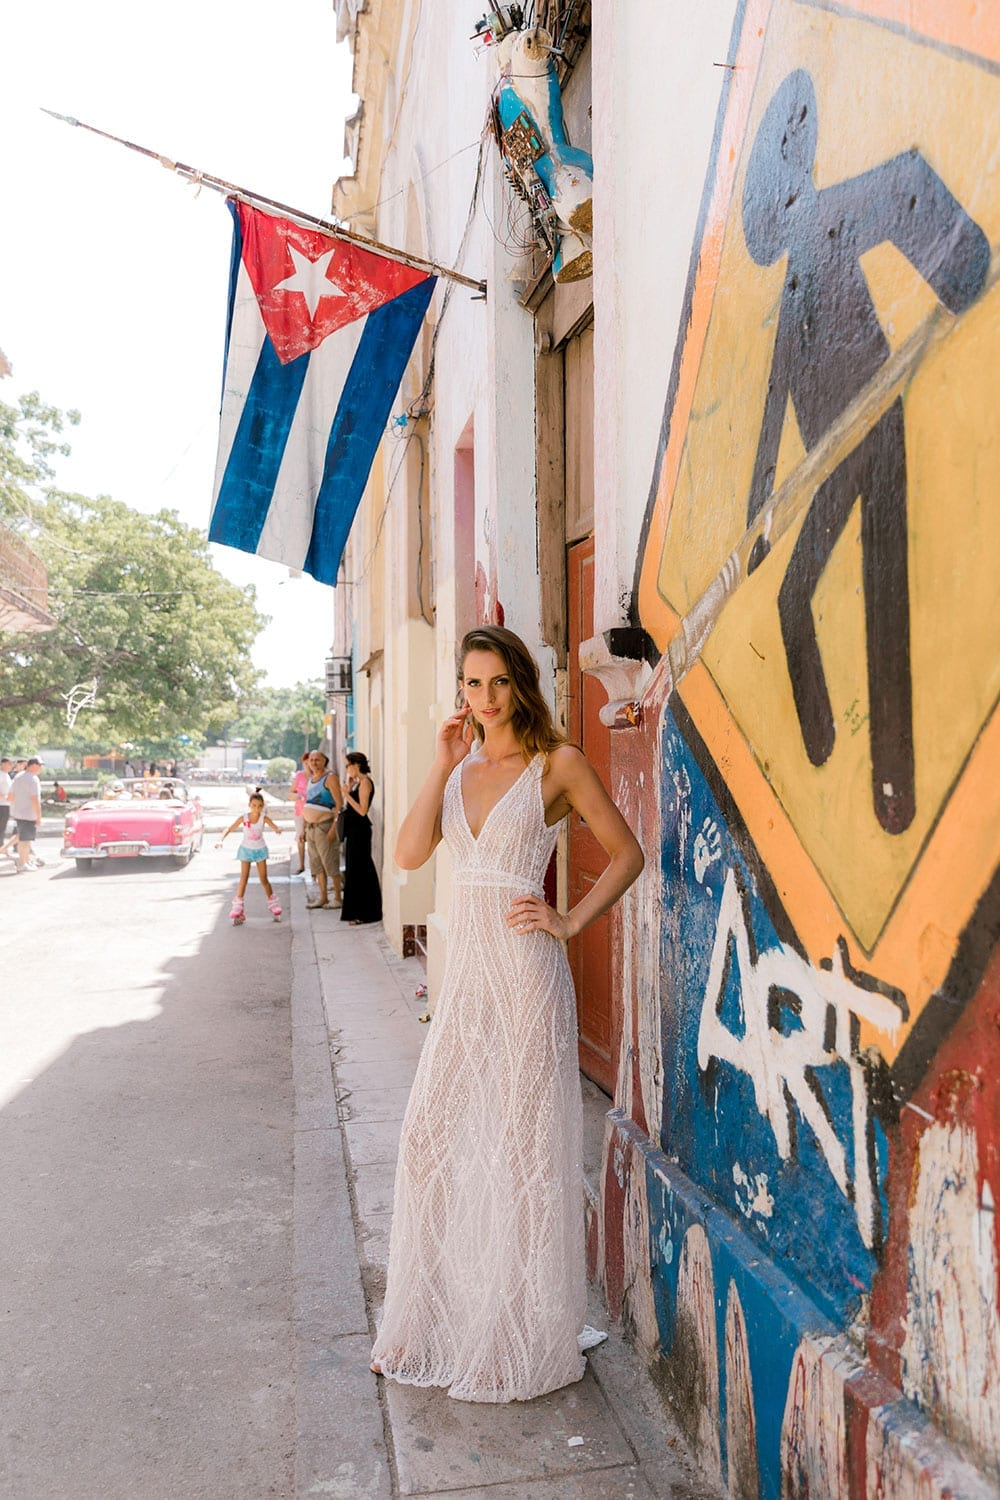 Model wearing Vinka Design Alexia Wedding Dress, a Semi Sheer Beaded Lace Wedding Gown on Havan street with flag and roadsign